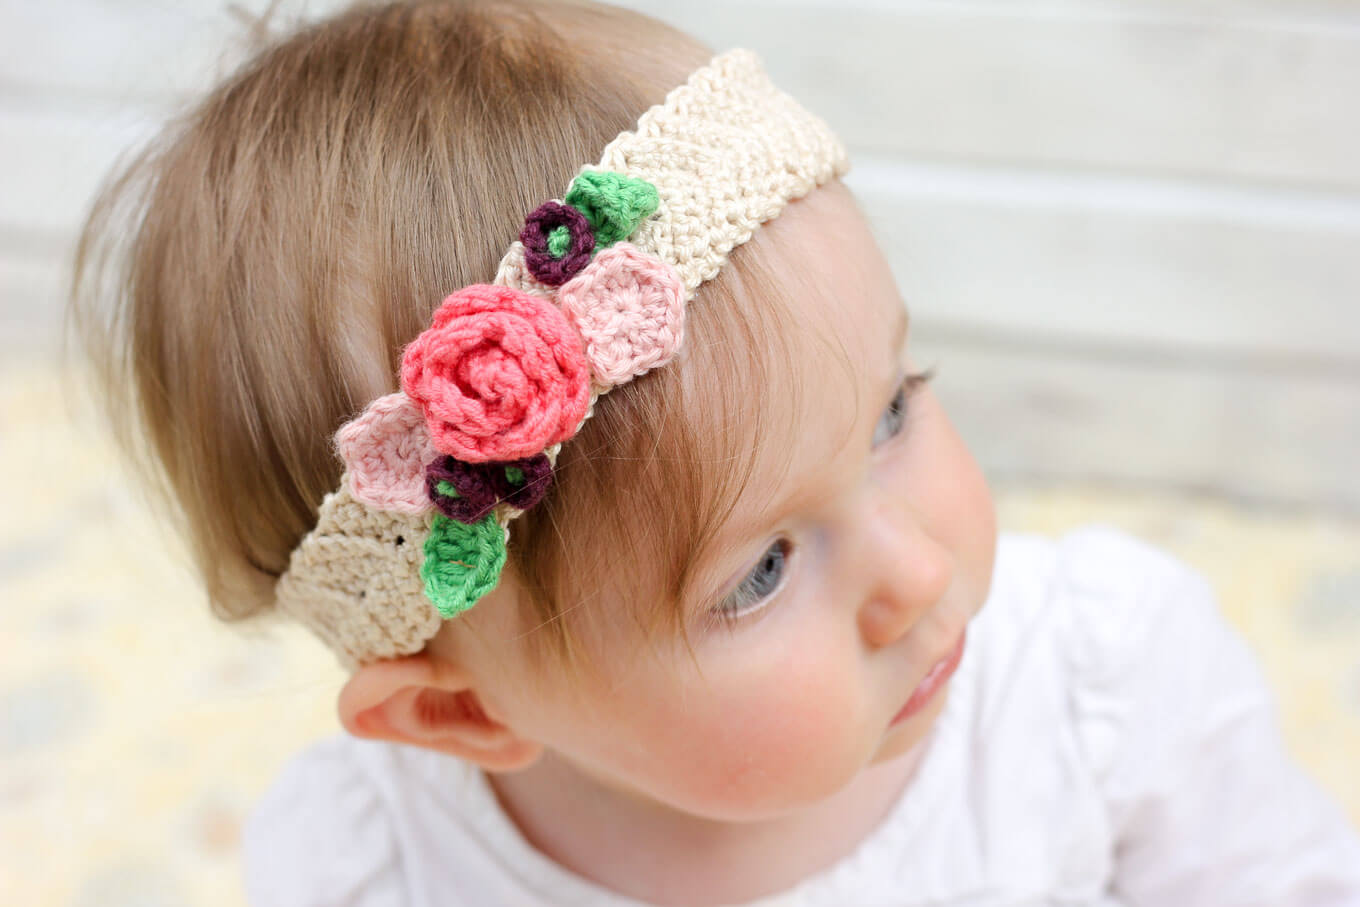 Free Crochet Pattern Flowers Headbands : Pics Photos - Crochet Baby Headbands Instructions All ...